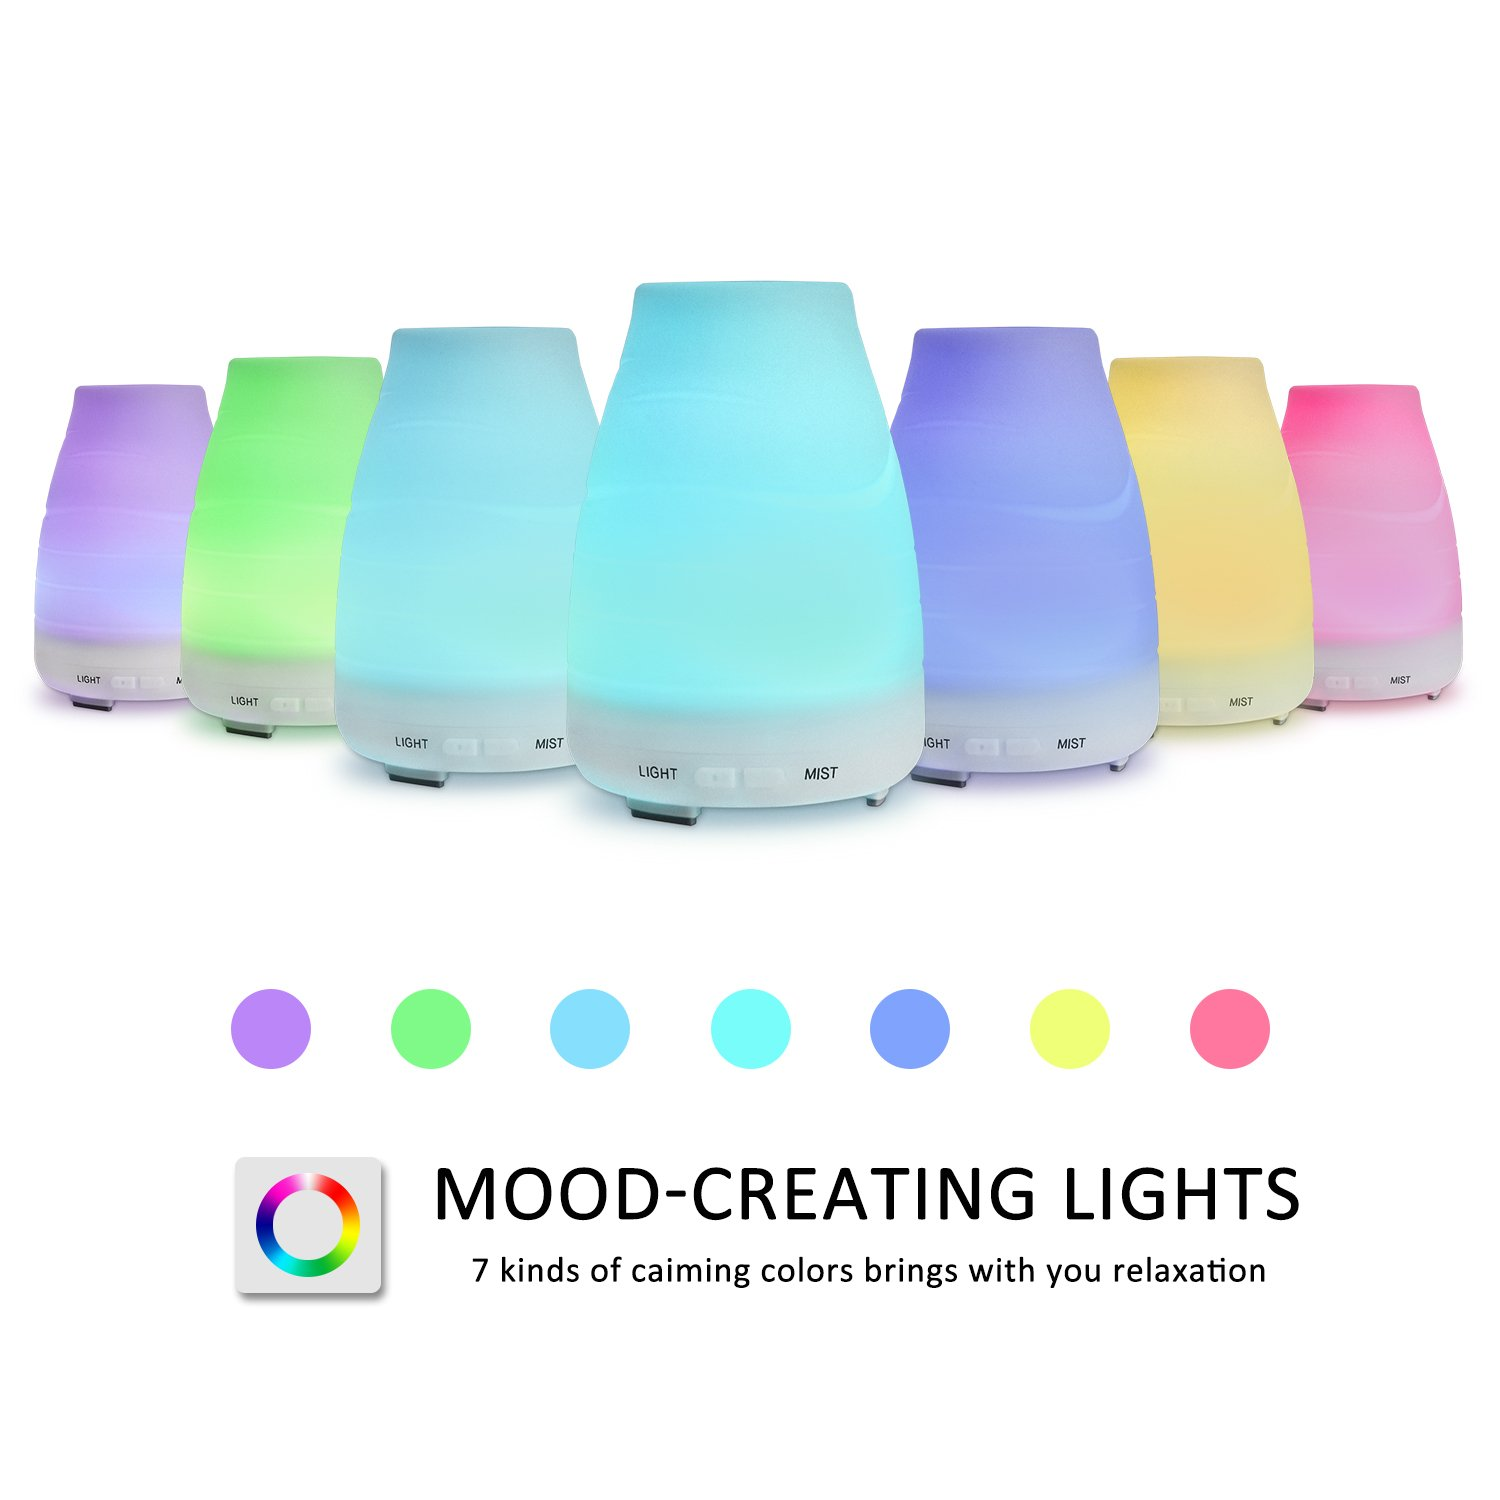 ESEOE 100ML Auto-Off Ultrasonic Diffuser, LED Colorful Night-Ligting Aromatherapy Diffuser for Home, Yoga, Office, Spa, Bedroom, Baby Room (C)